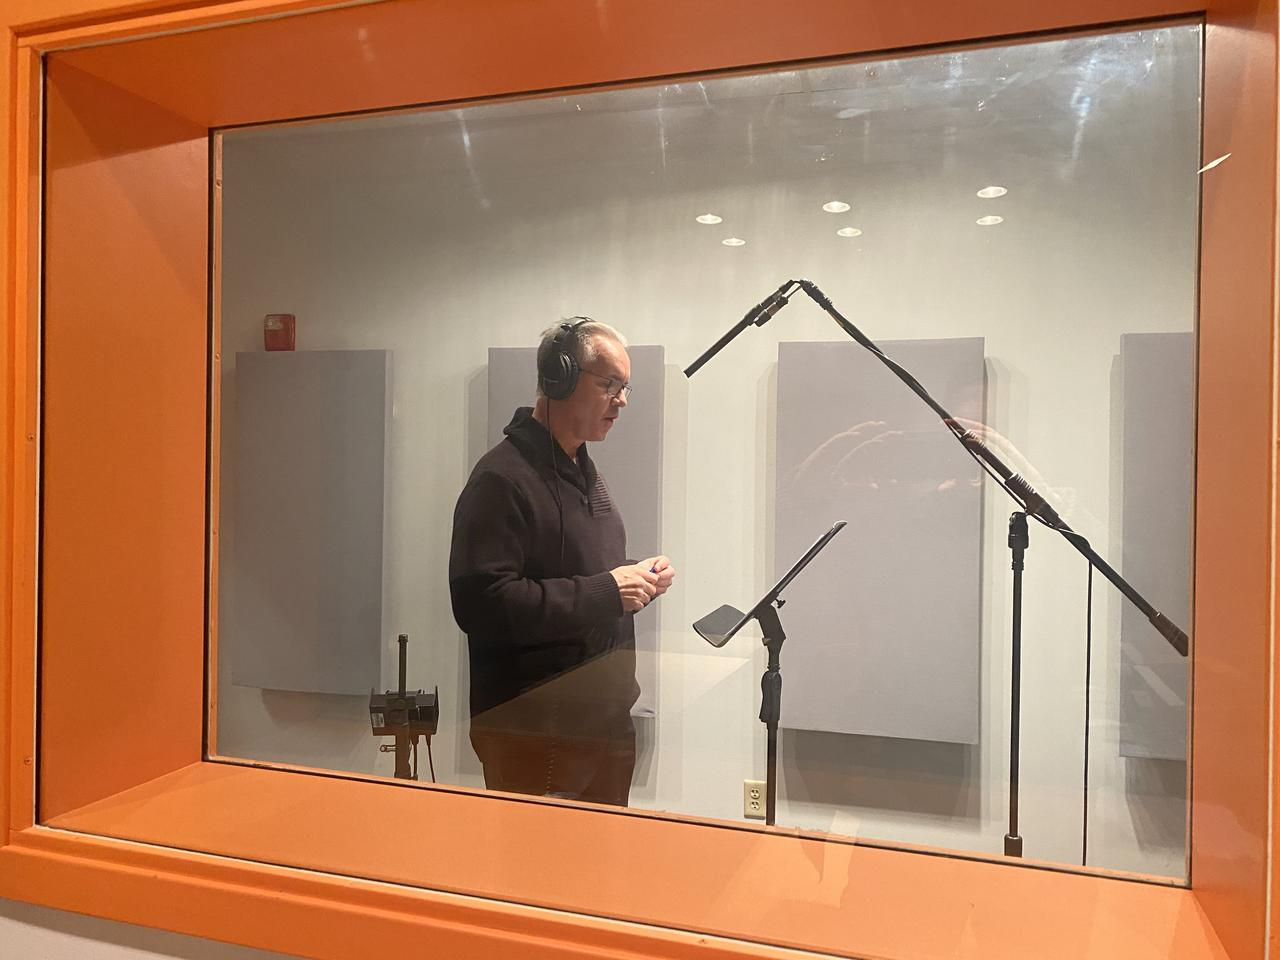 gerry recording 1.jpeg